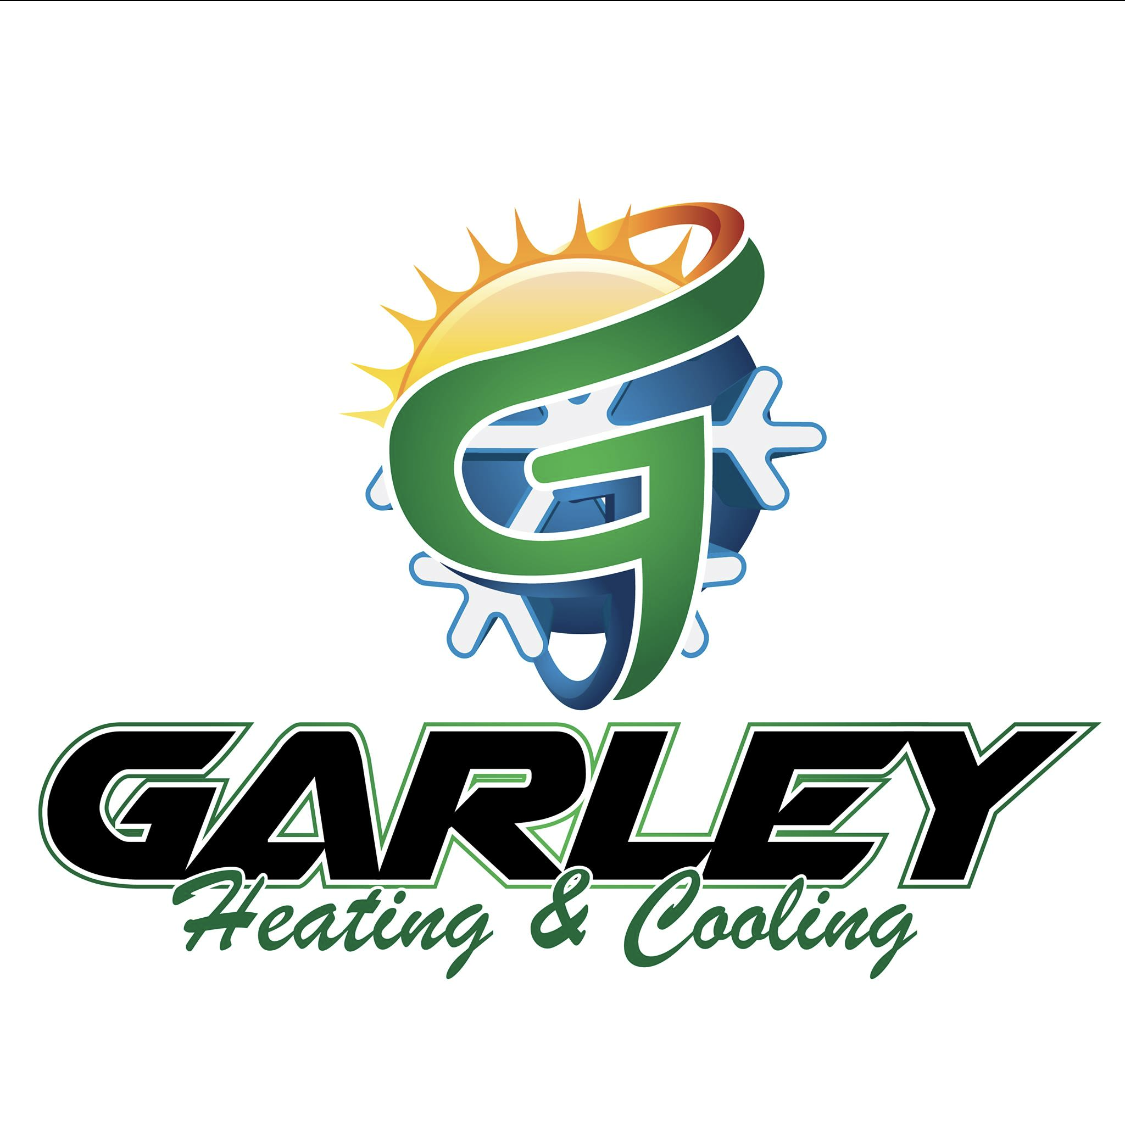 Garley Heating & Cooling LLC logo